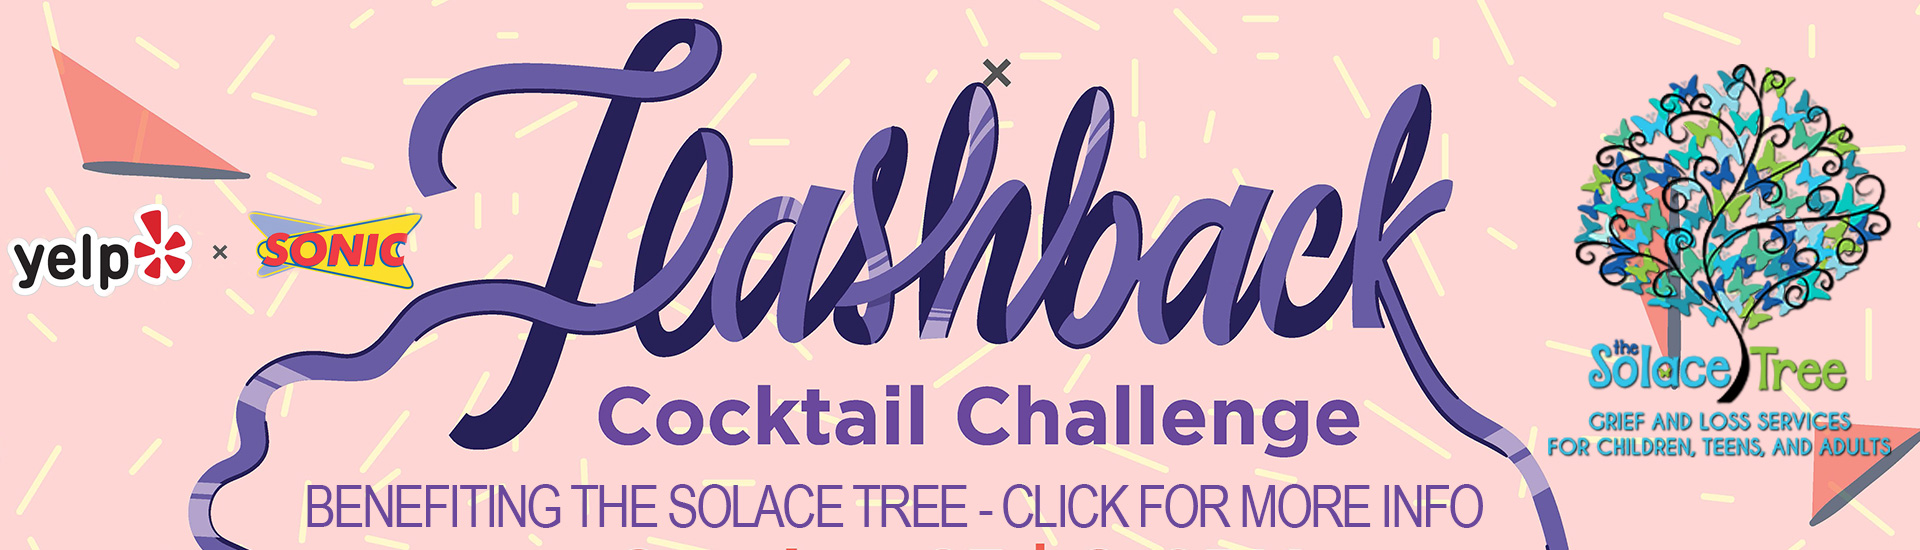 Flashback Cocktail Challenge Benefiting The Solace Tree – 10-23-19